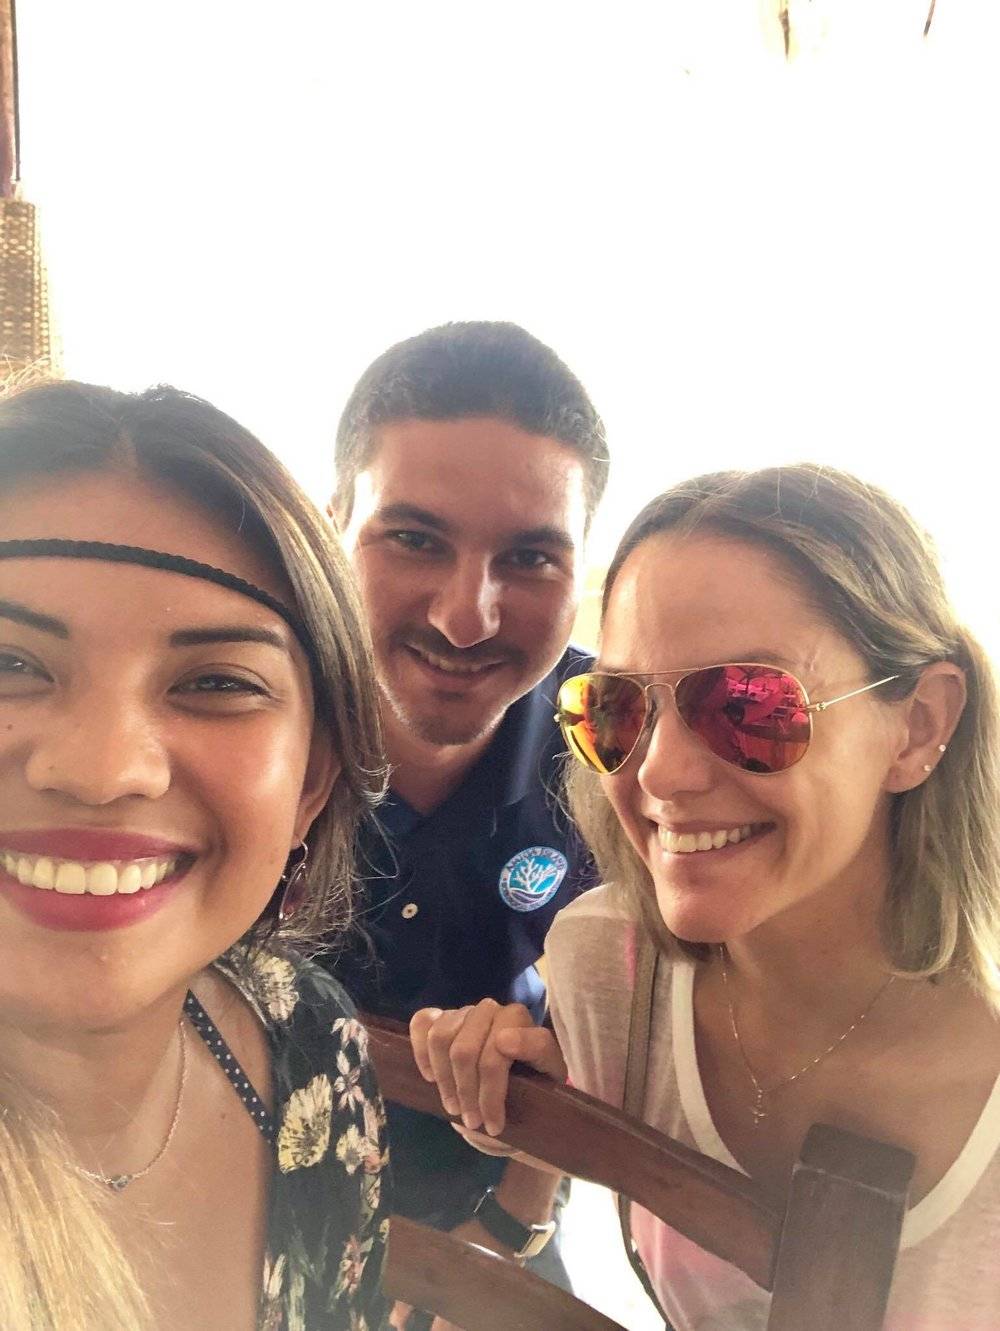 Liveaboard Life Day 280: We've just met some wonderful people here who made our trip super awesome �